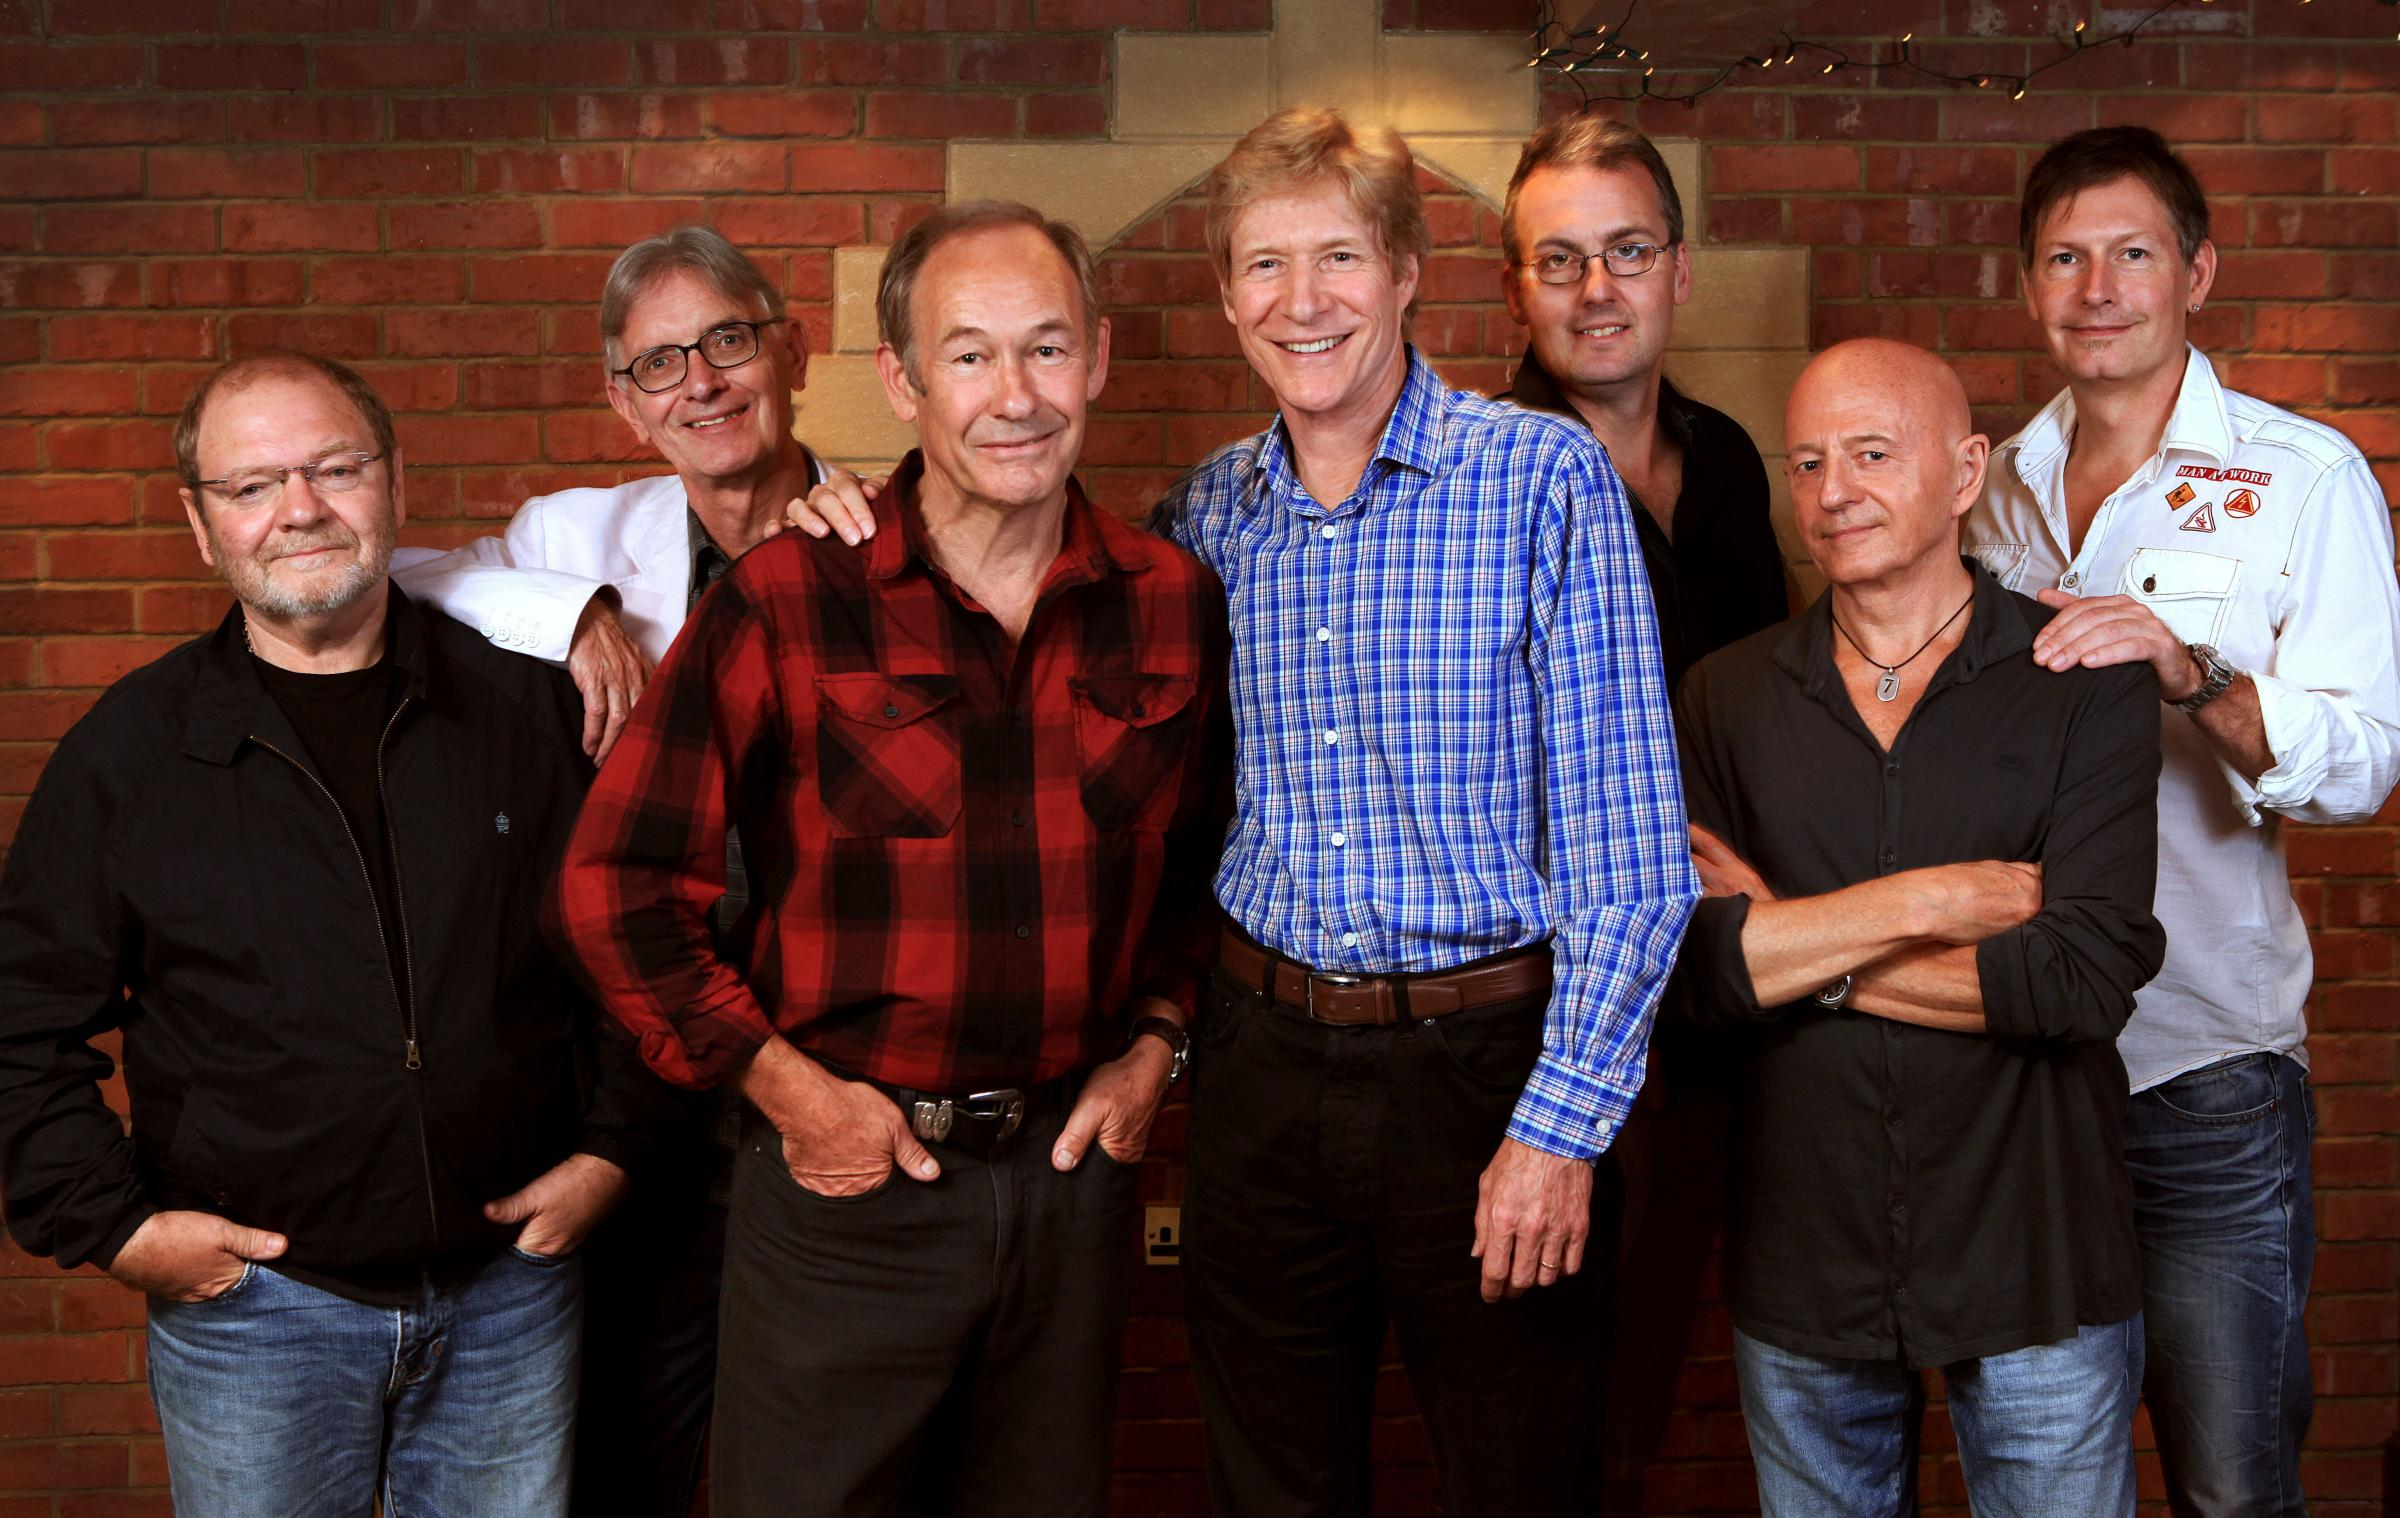 'The R word is banned' - The Manfreds to play hits, jazz, blues and more at pavilion show